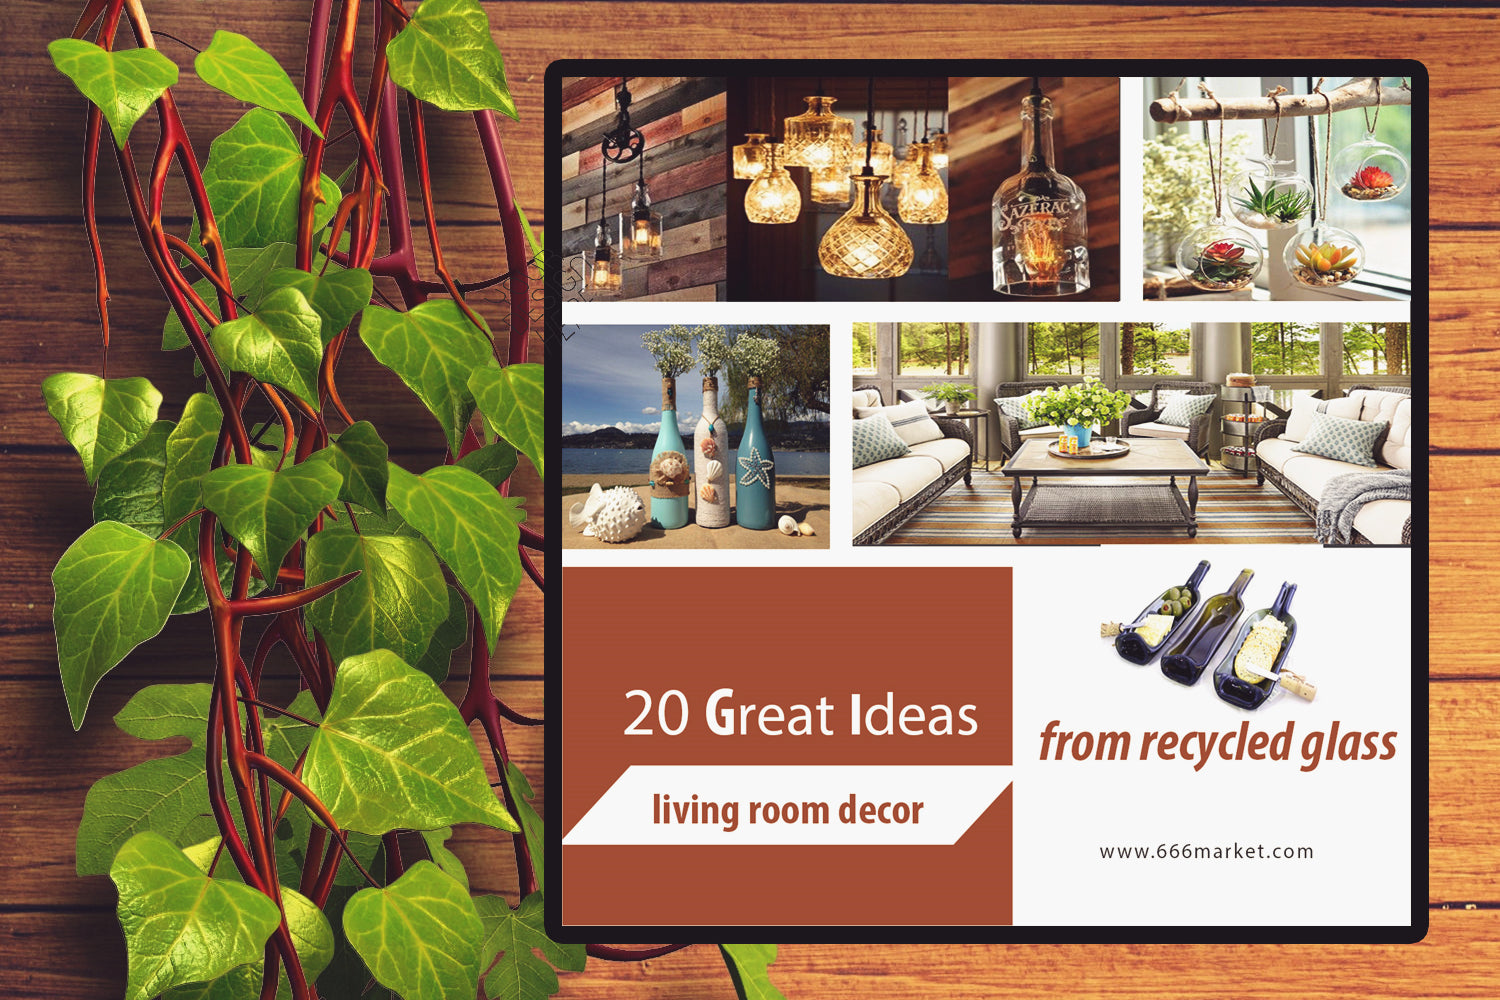 20 Great Ideas for Living room decor from recycle bottles, from whiskey bottles (Can DIY, Printable And Editable)